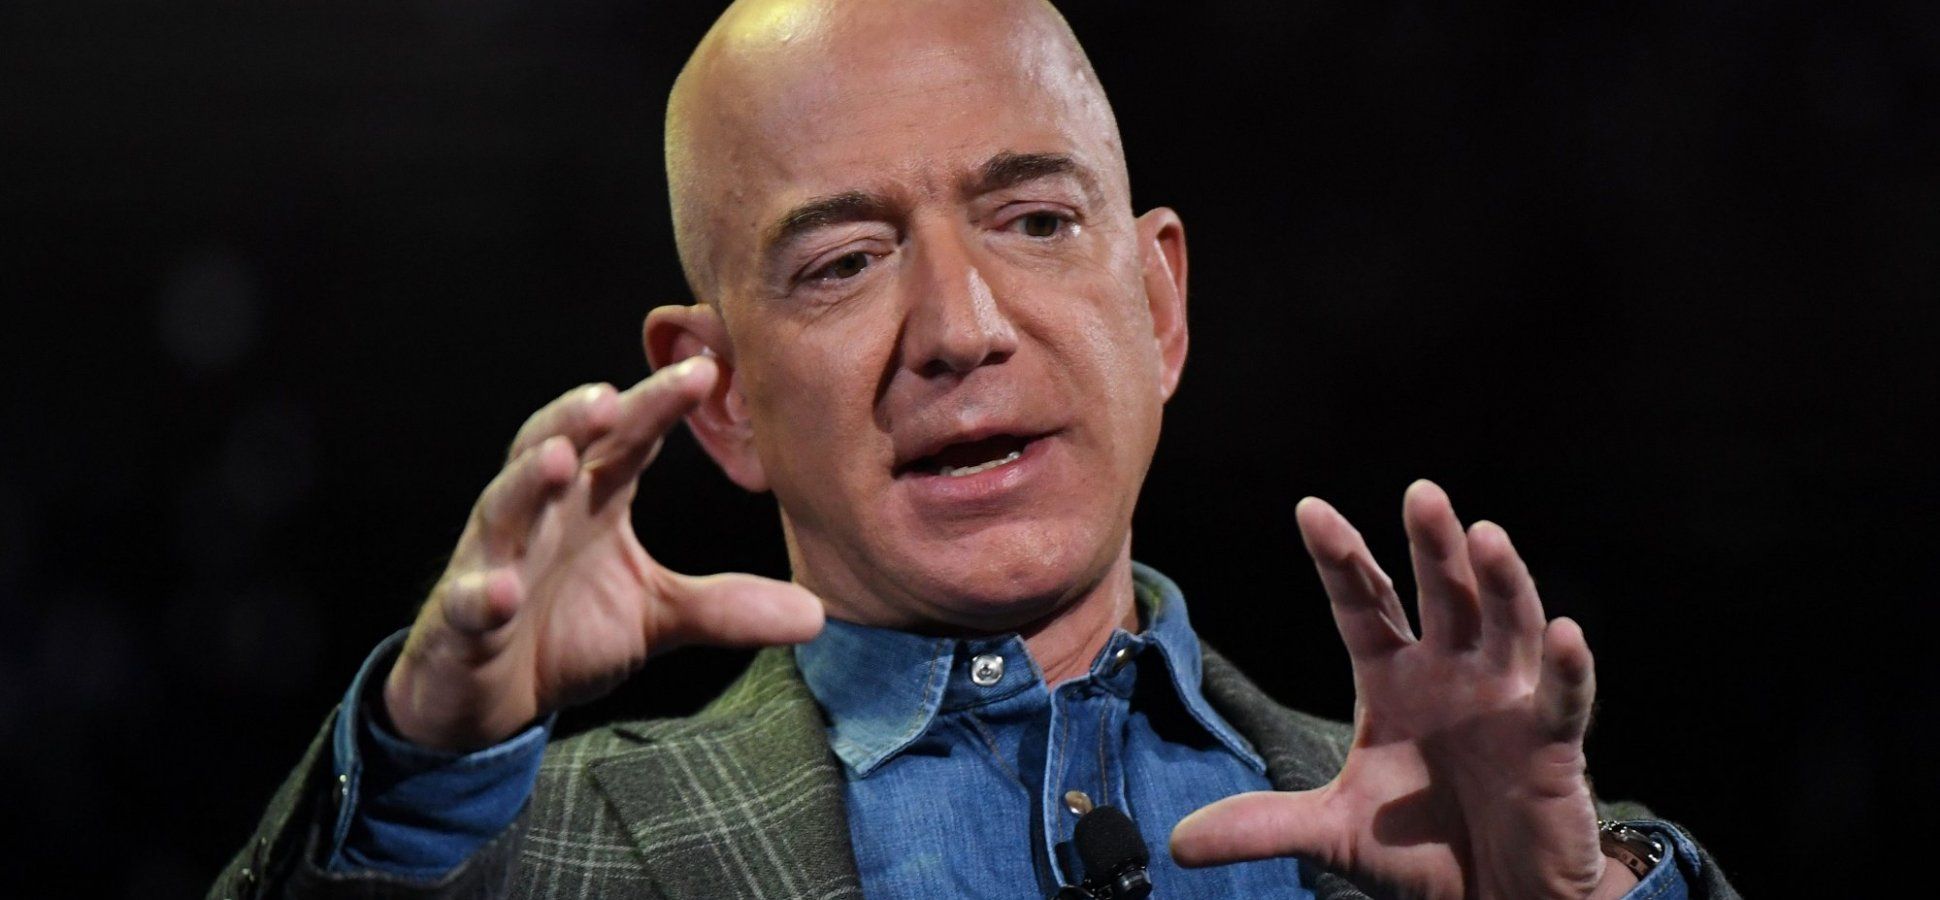 Jeff Bezos Used Only 9 Words to Perfectly Describe Entrepreneurial Success